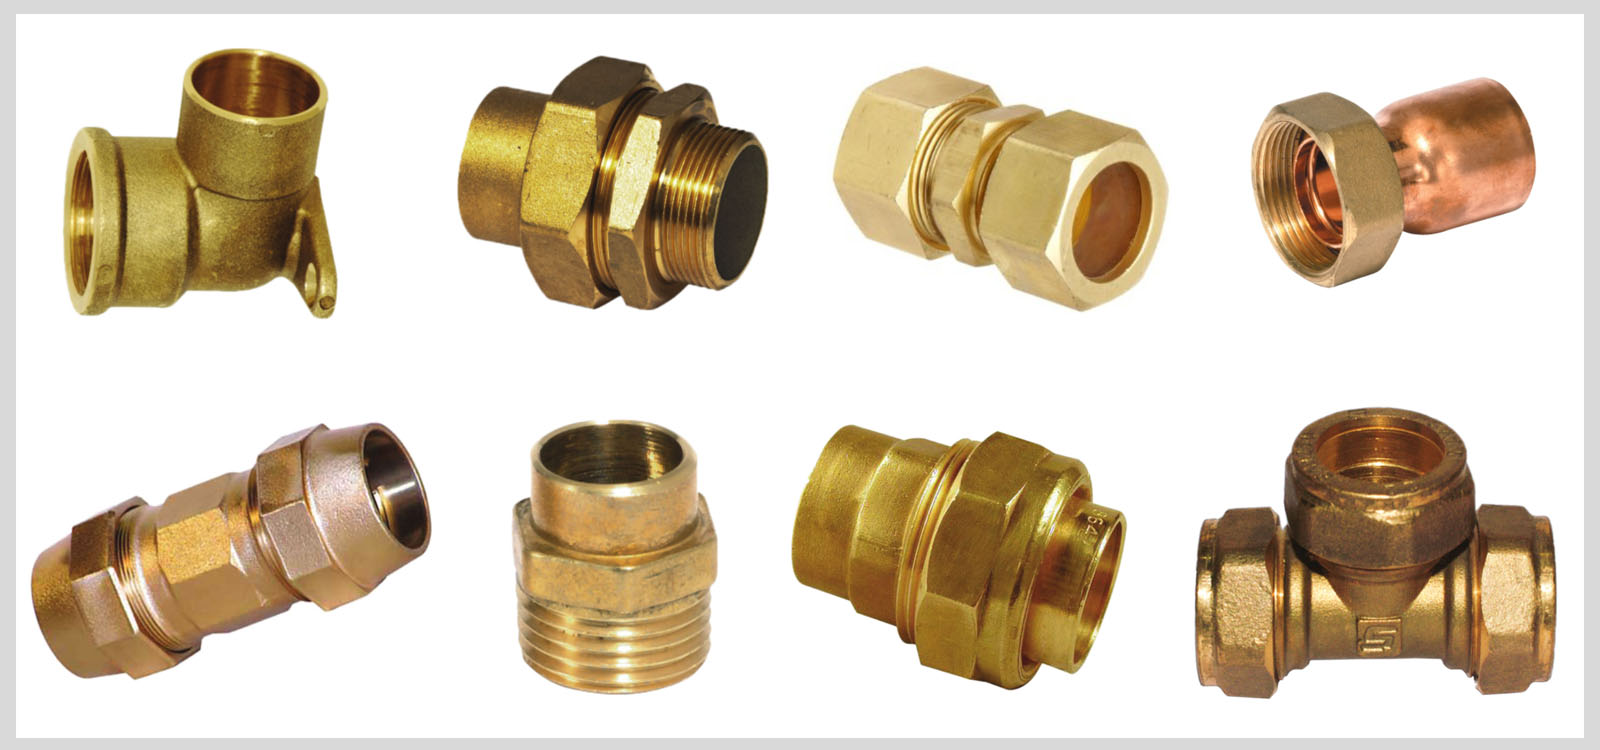 Brass copper pipe fittings